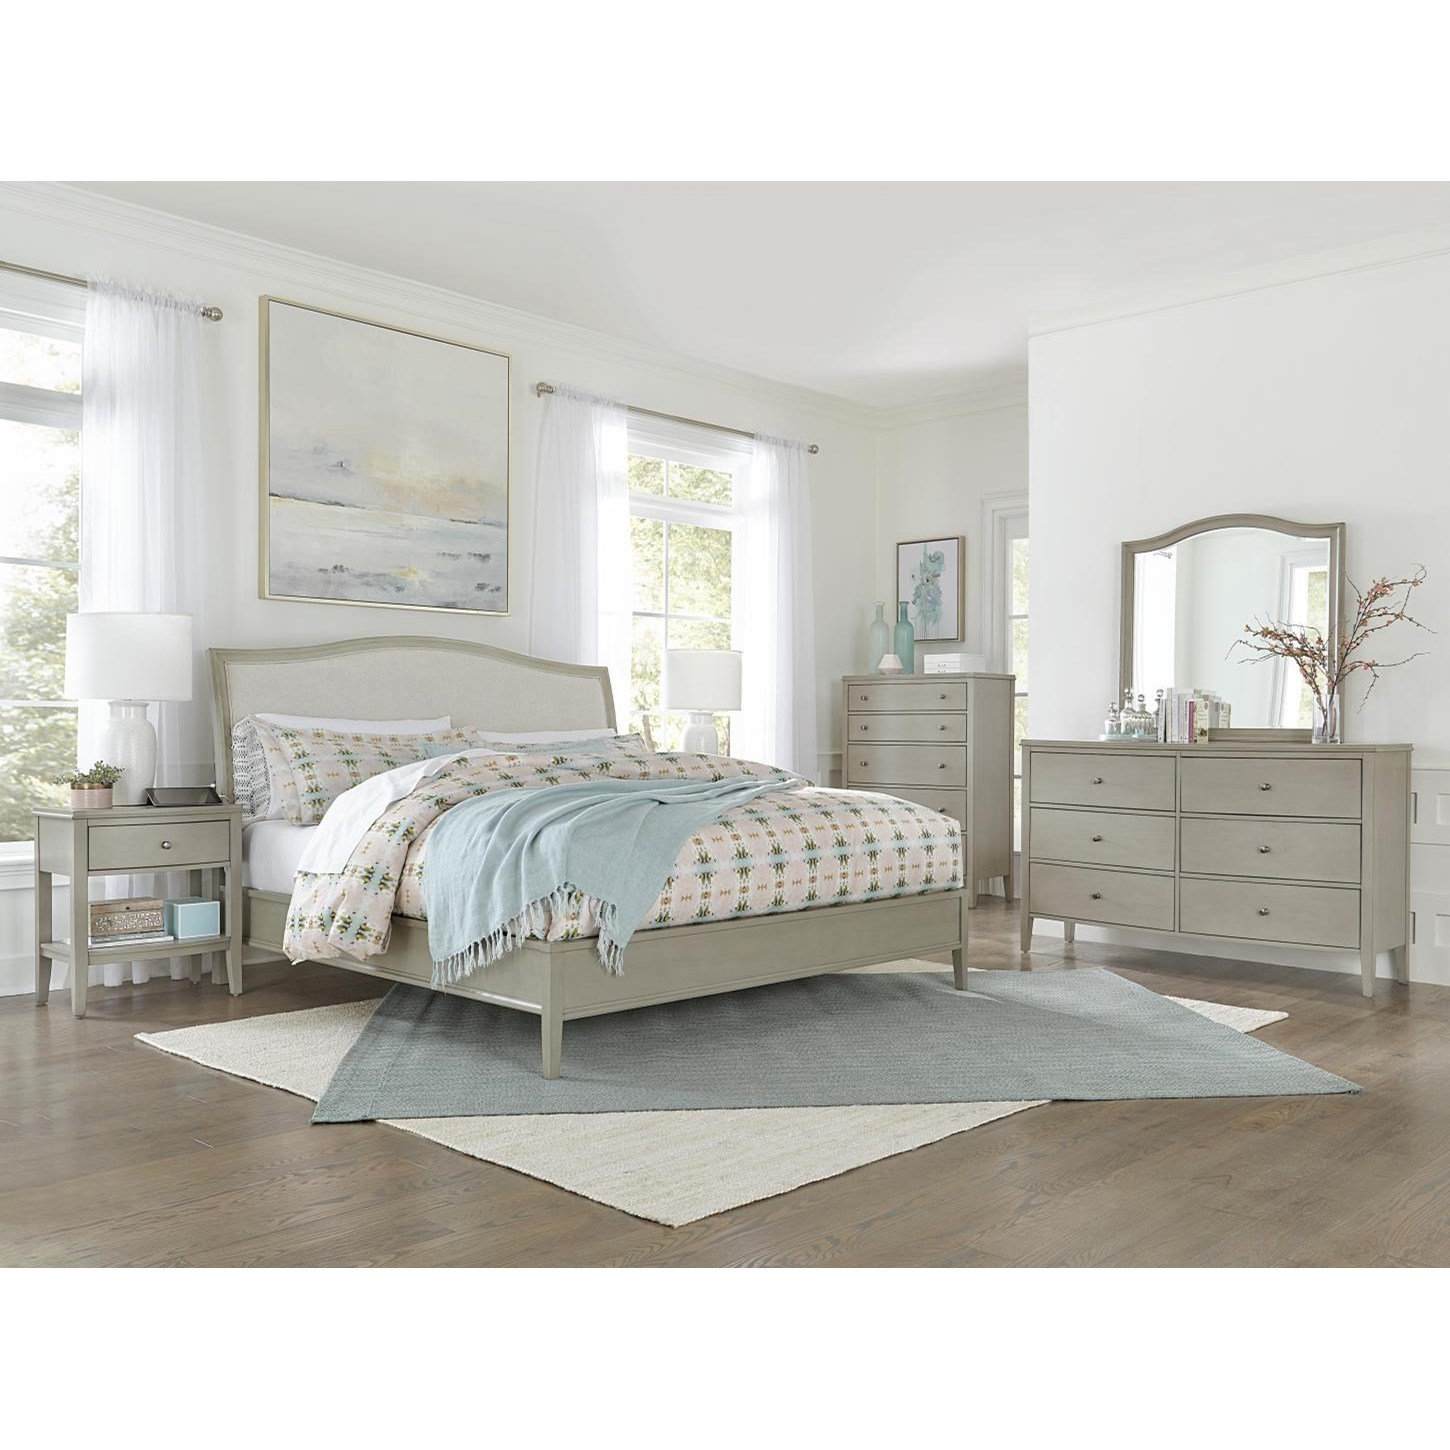 Charlotte  Queen Bedroom Group  by Aspenhome at Mueller Furniture